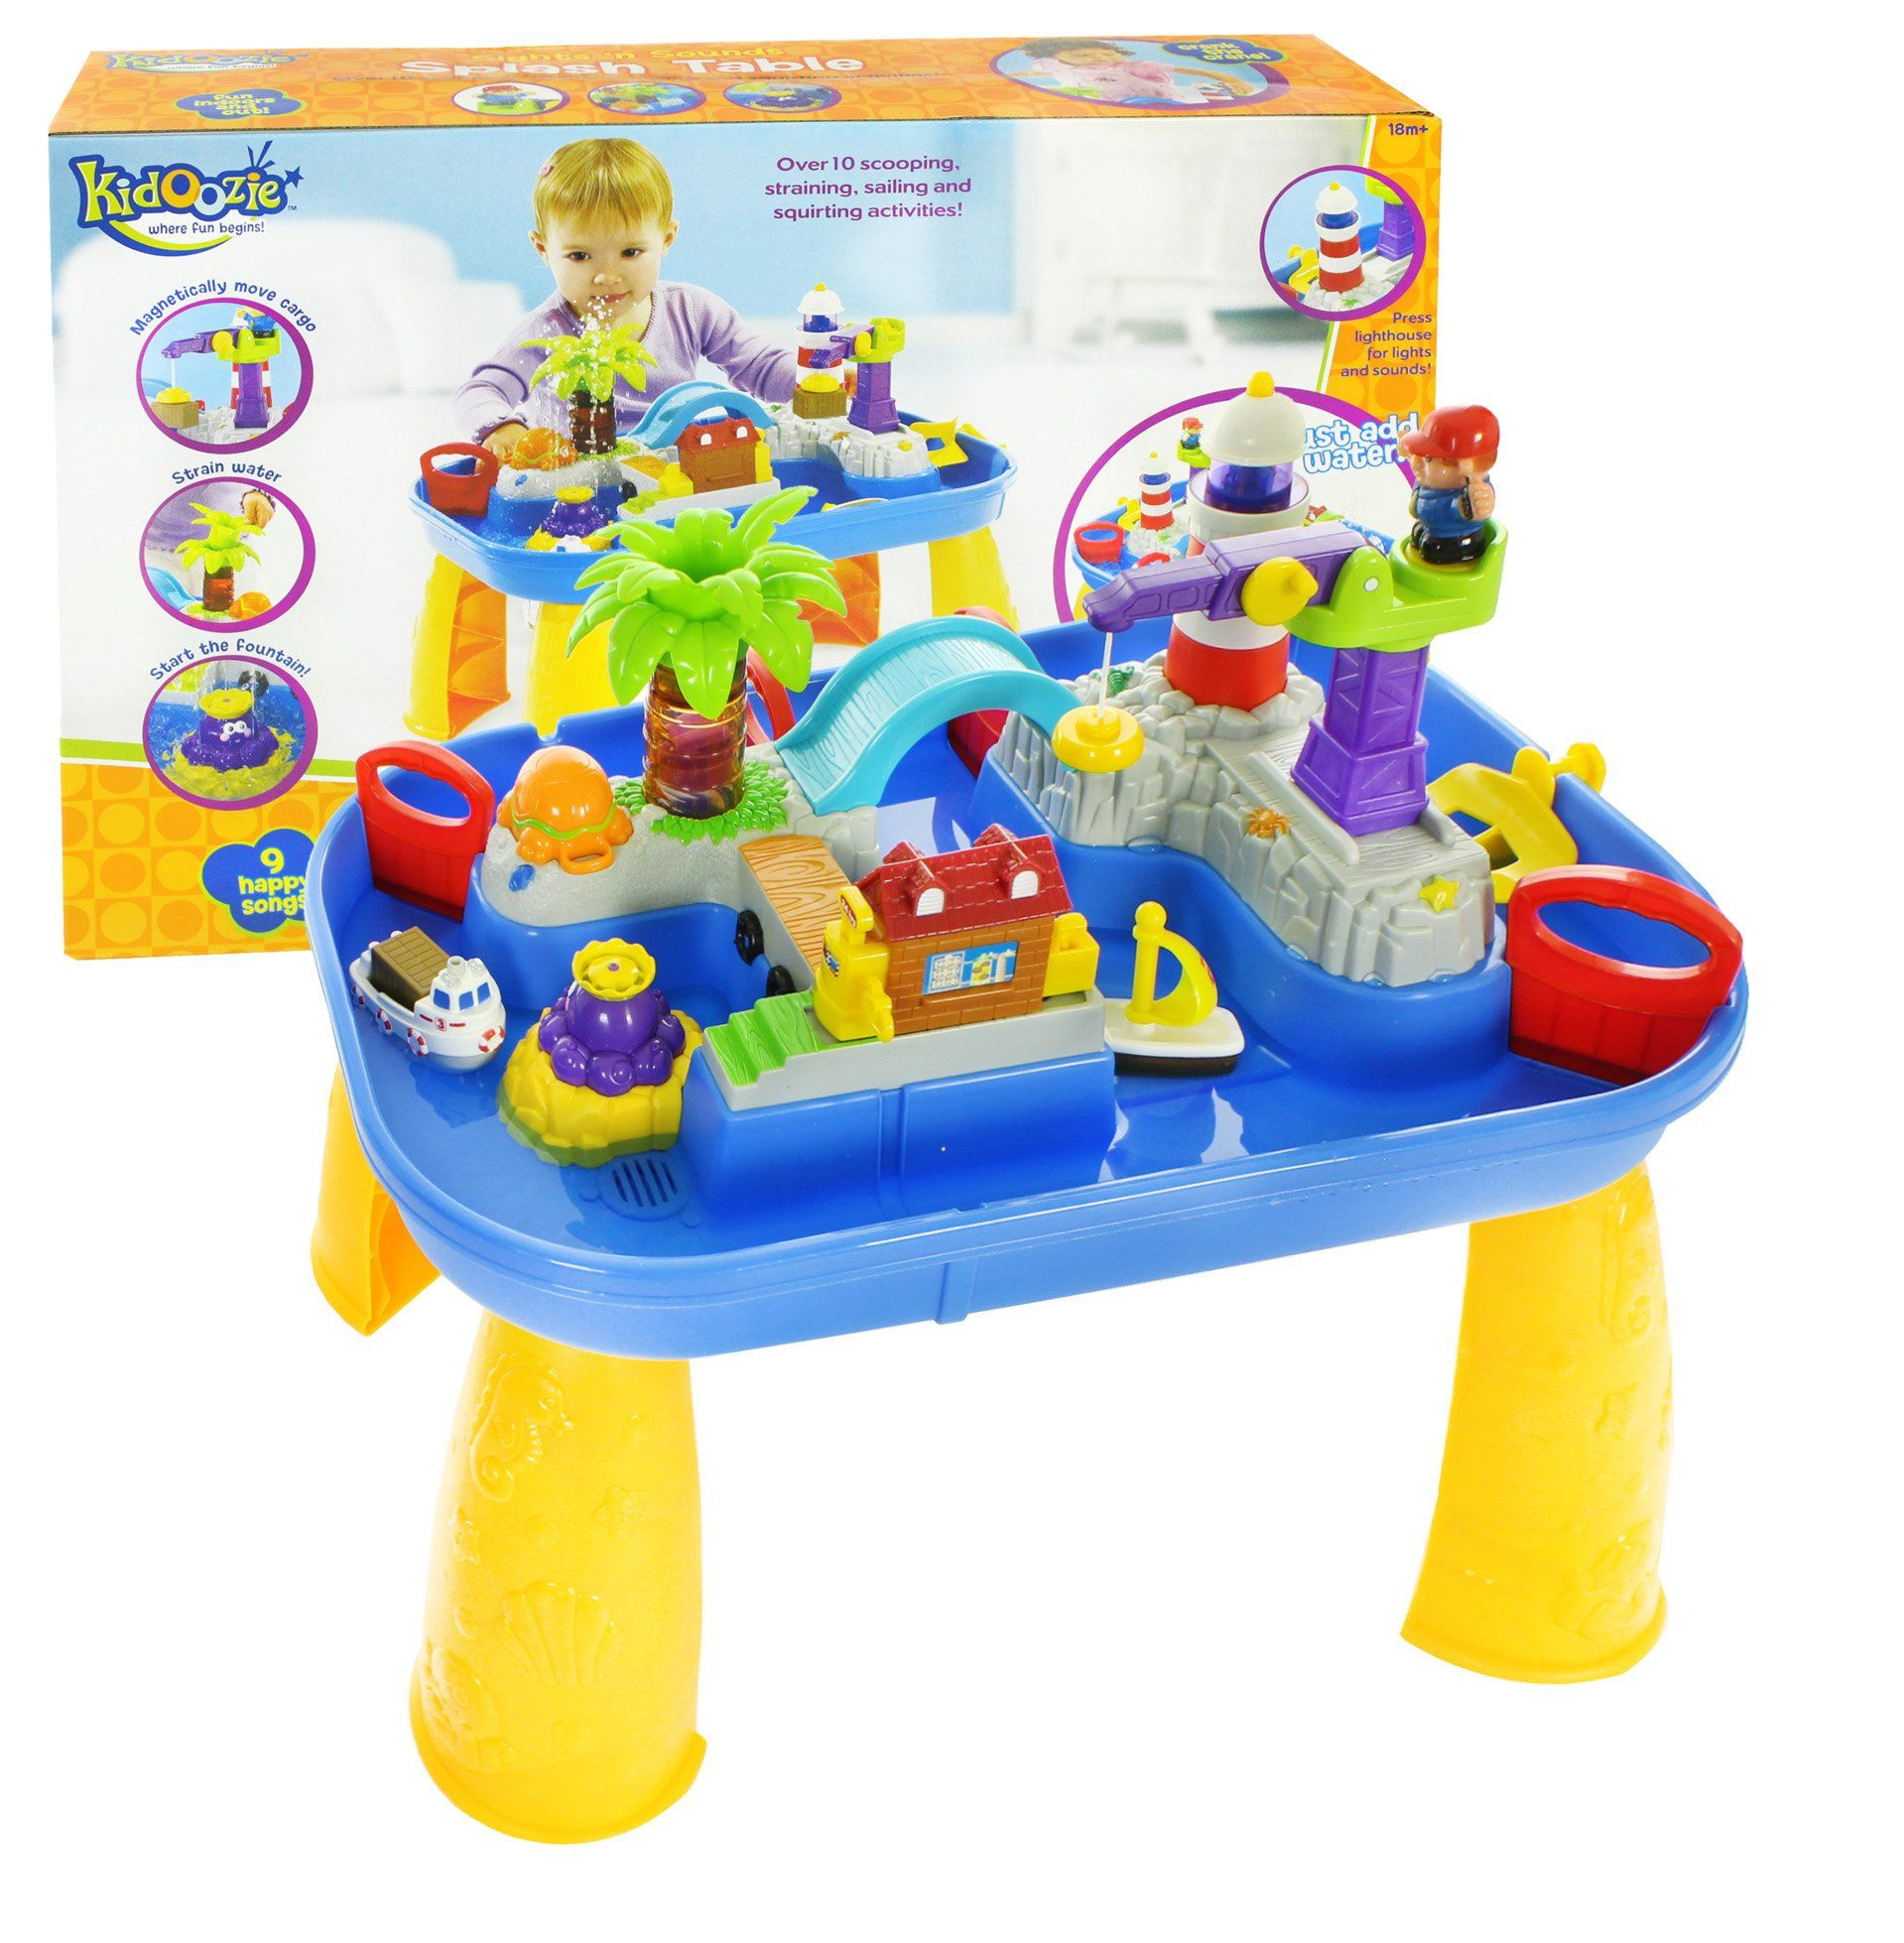 Amazon.com: Kidoozie Sights and Sounds Splash Table: Toys ...